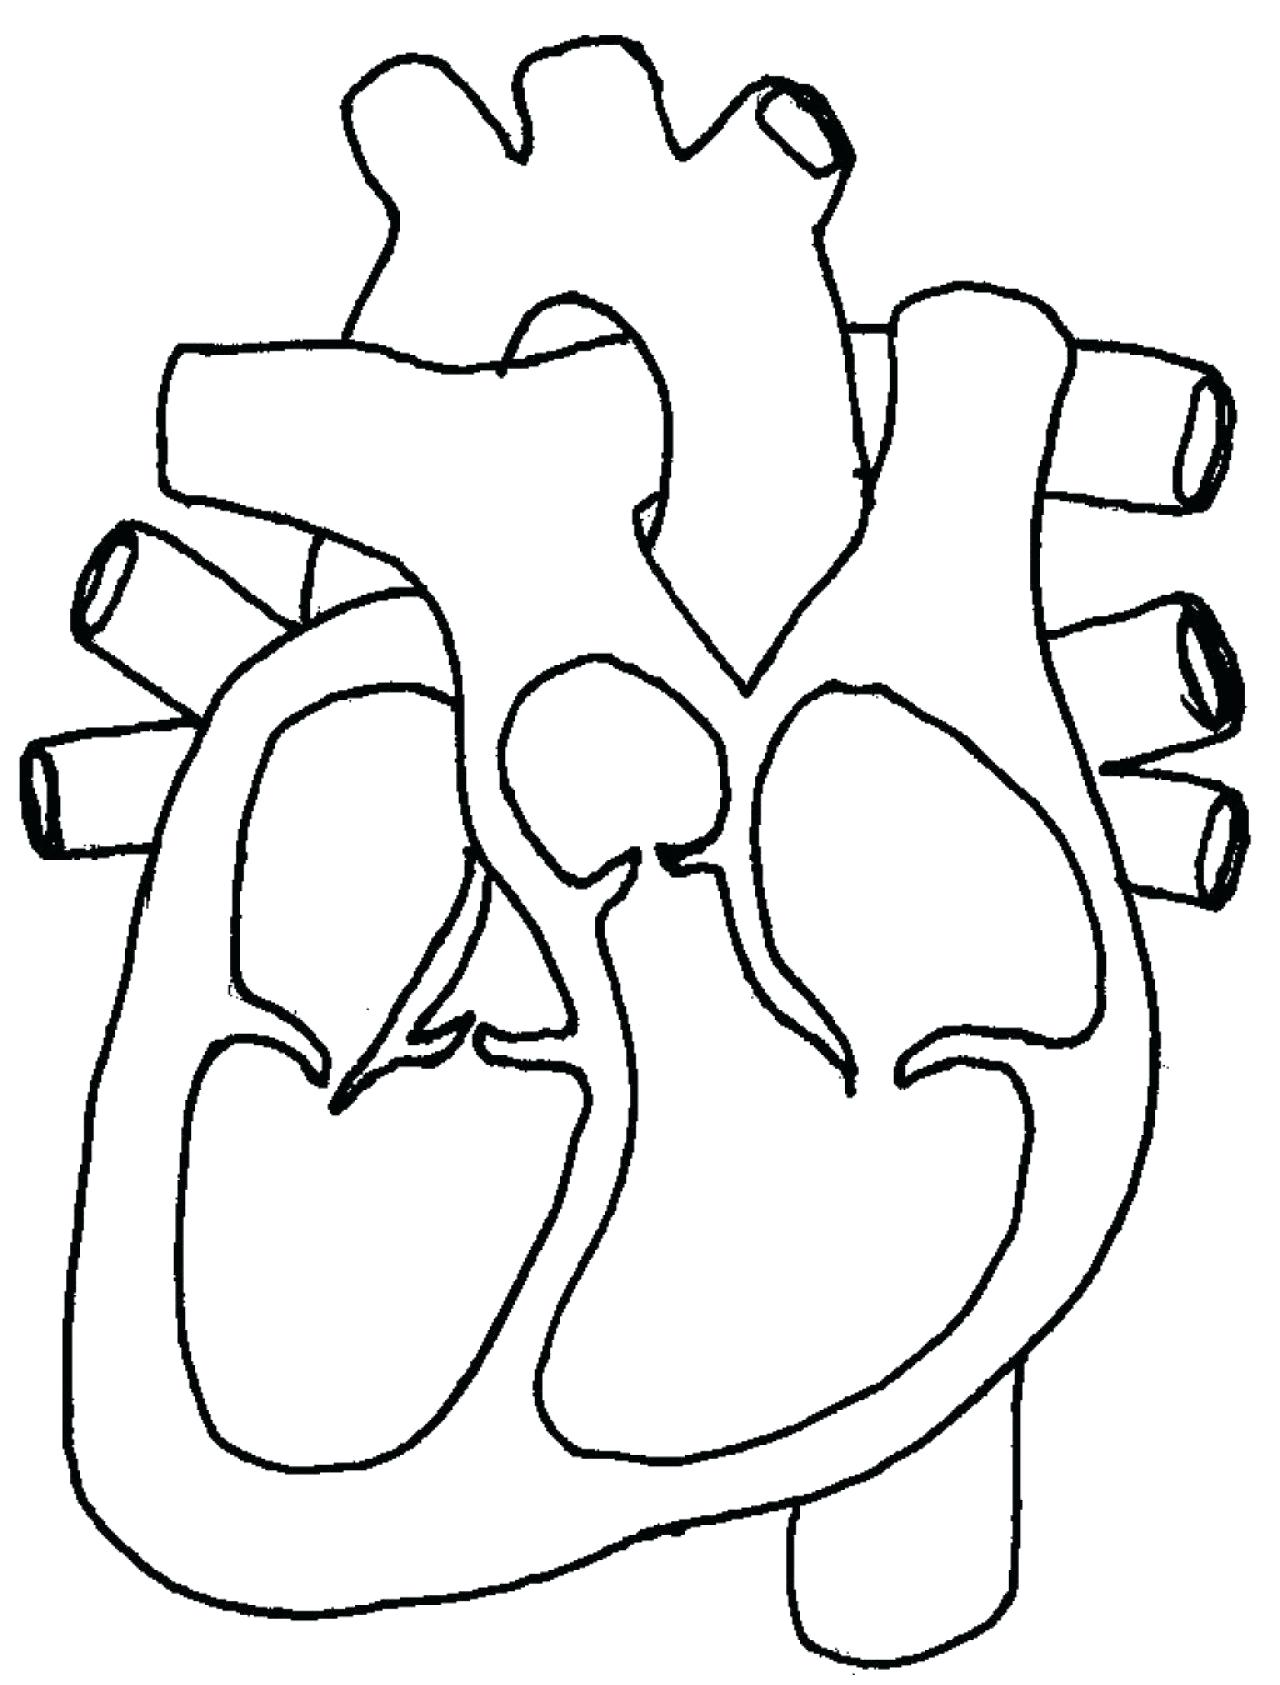 Cardiovascular System Drawing At Getdrawings